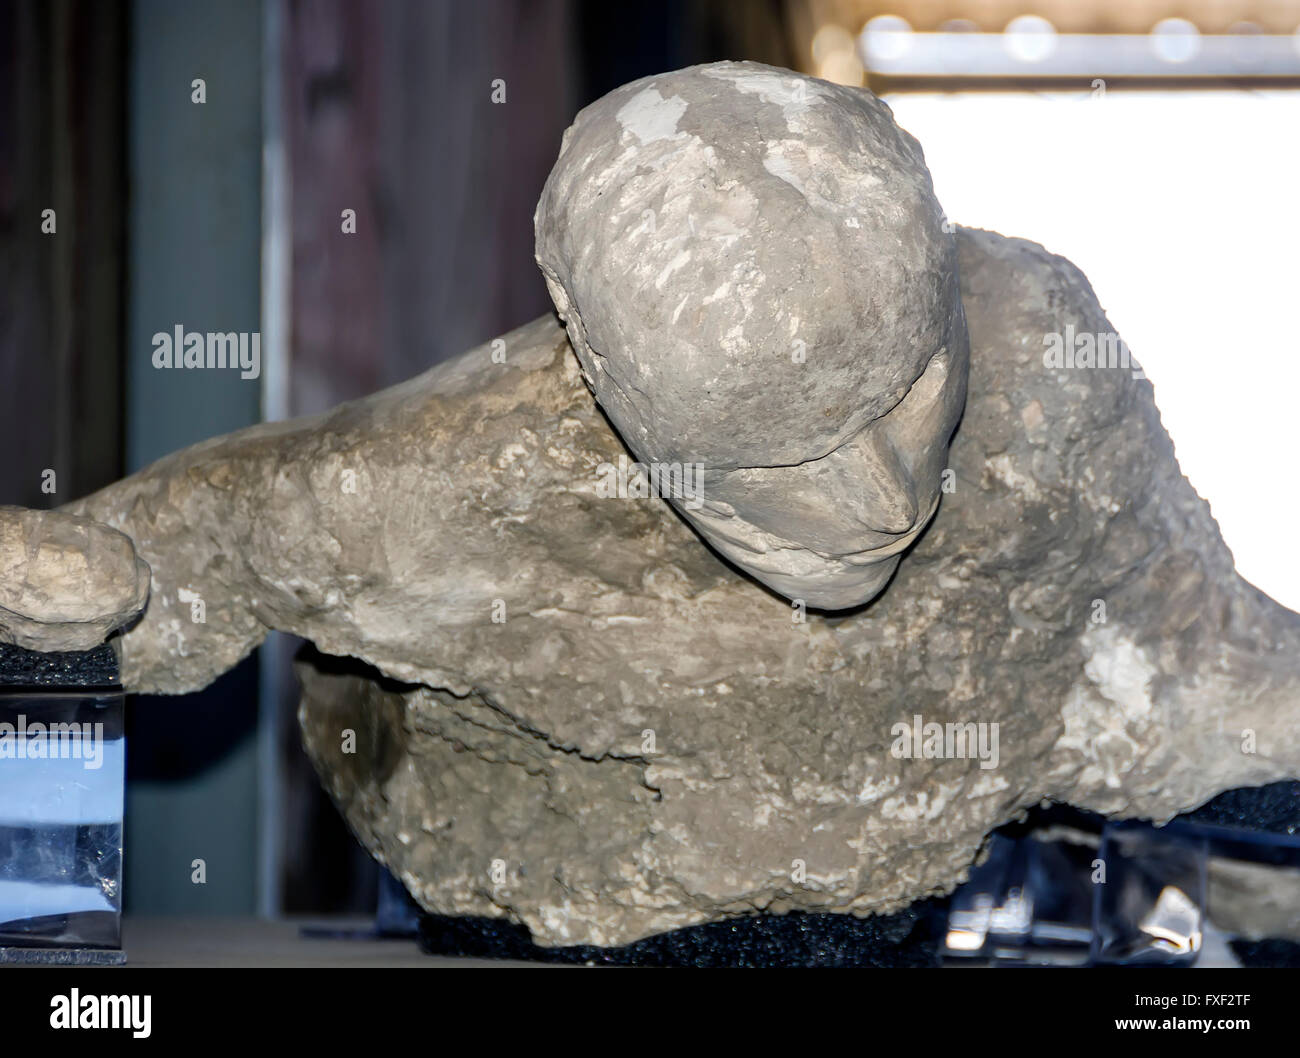 Plaster body cast detail of head and face of victim from Mount Vesuviis eruption 79 AD, Pompeii Italy. - Stock Image